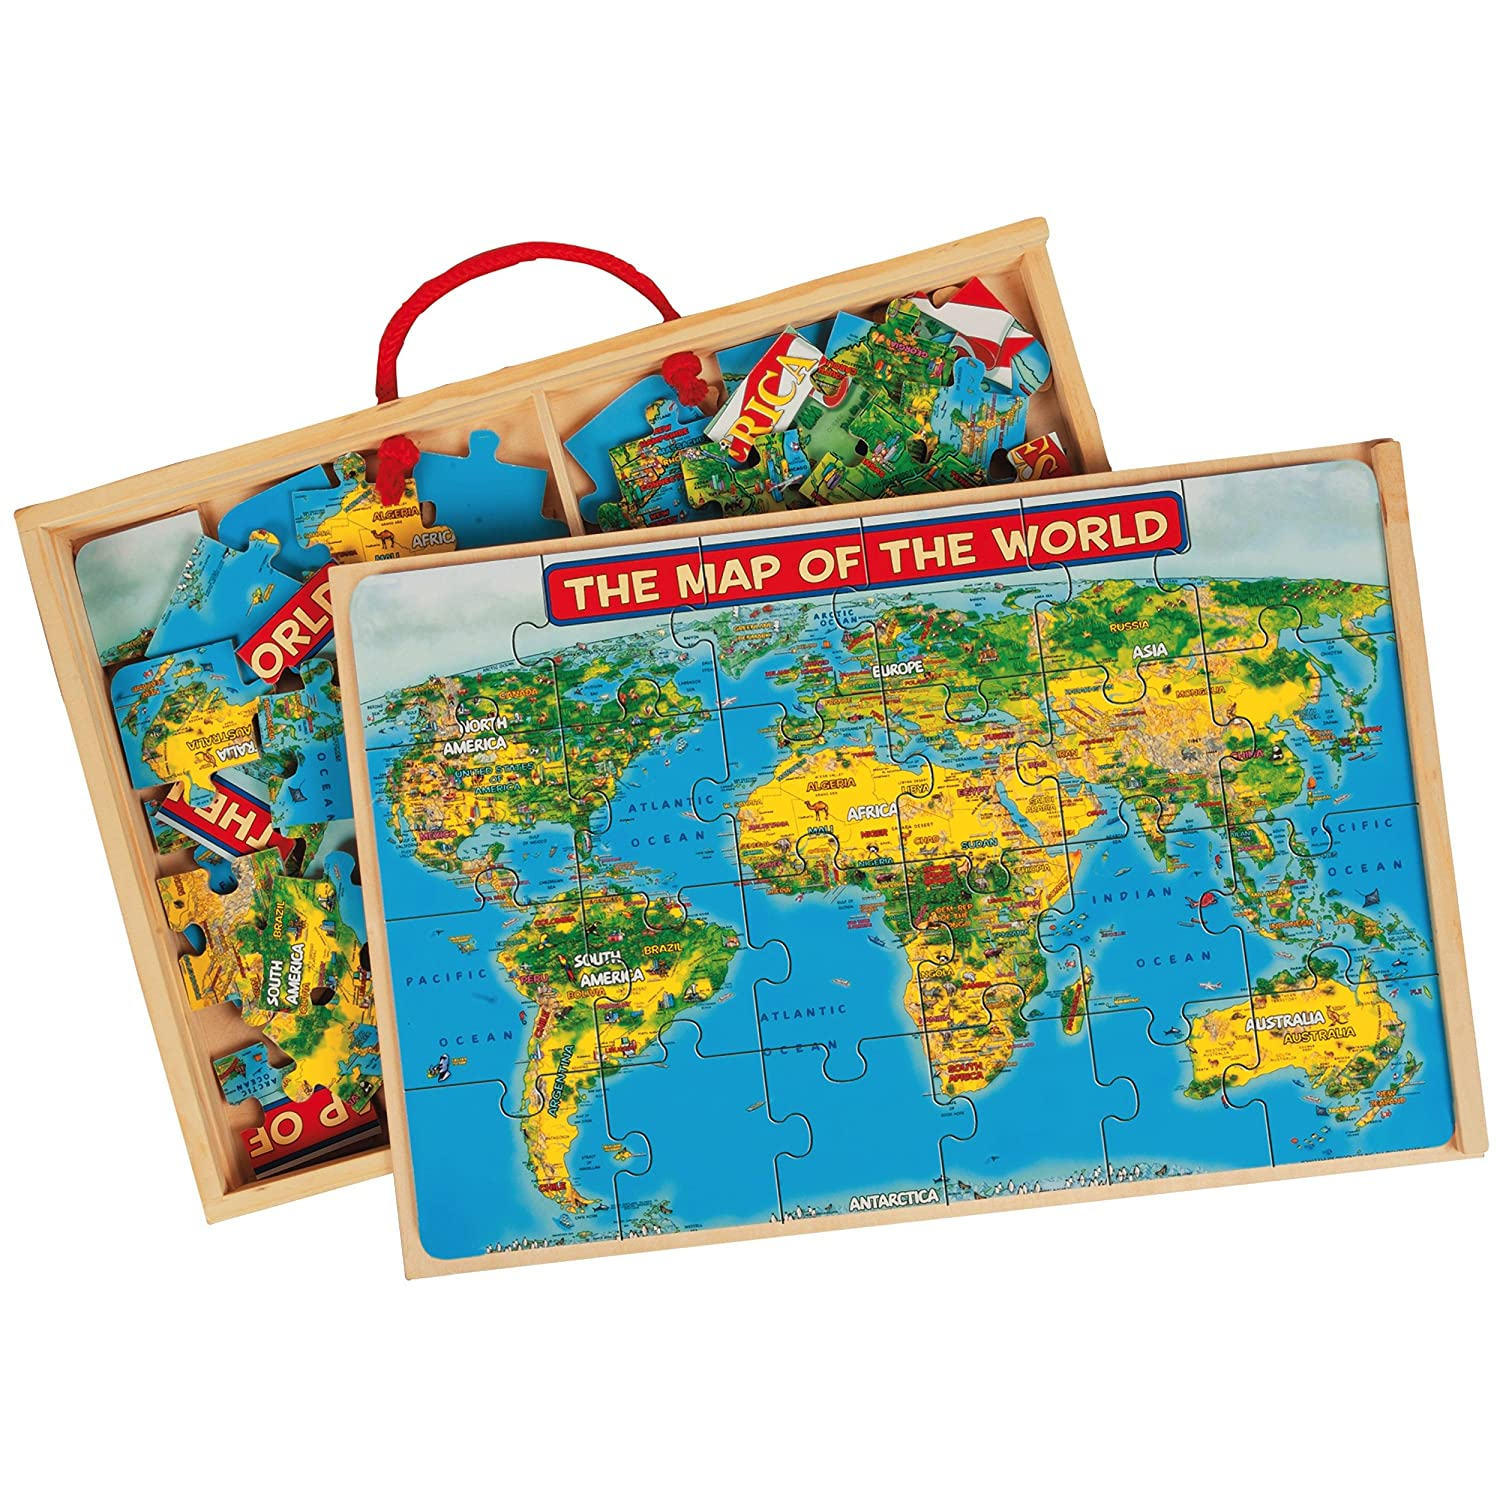 Amazoncom TS Shure US  World Map Puzzles In A Wooden Box - Mlb us map